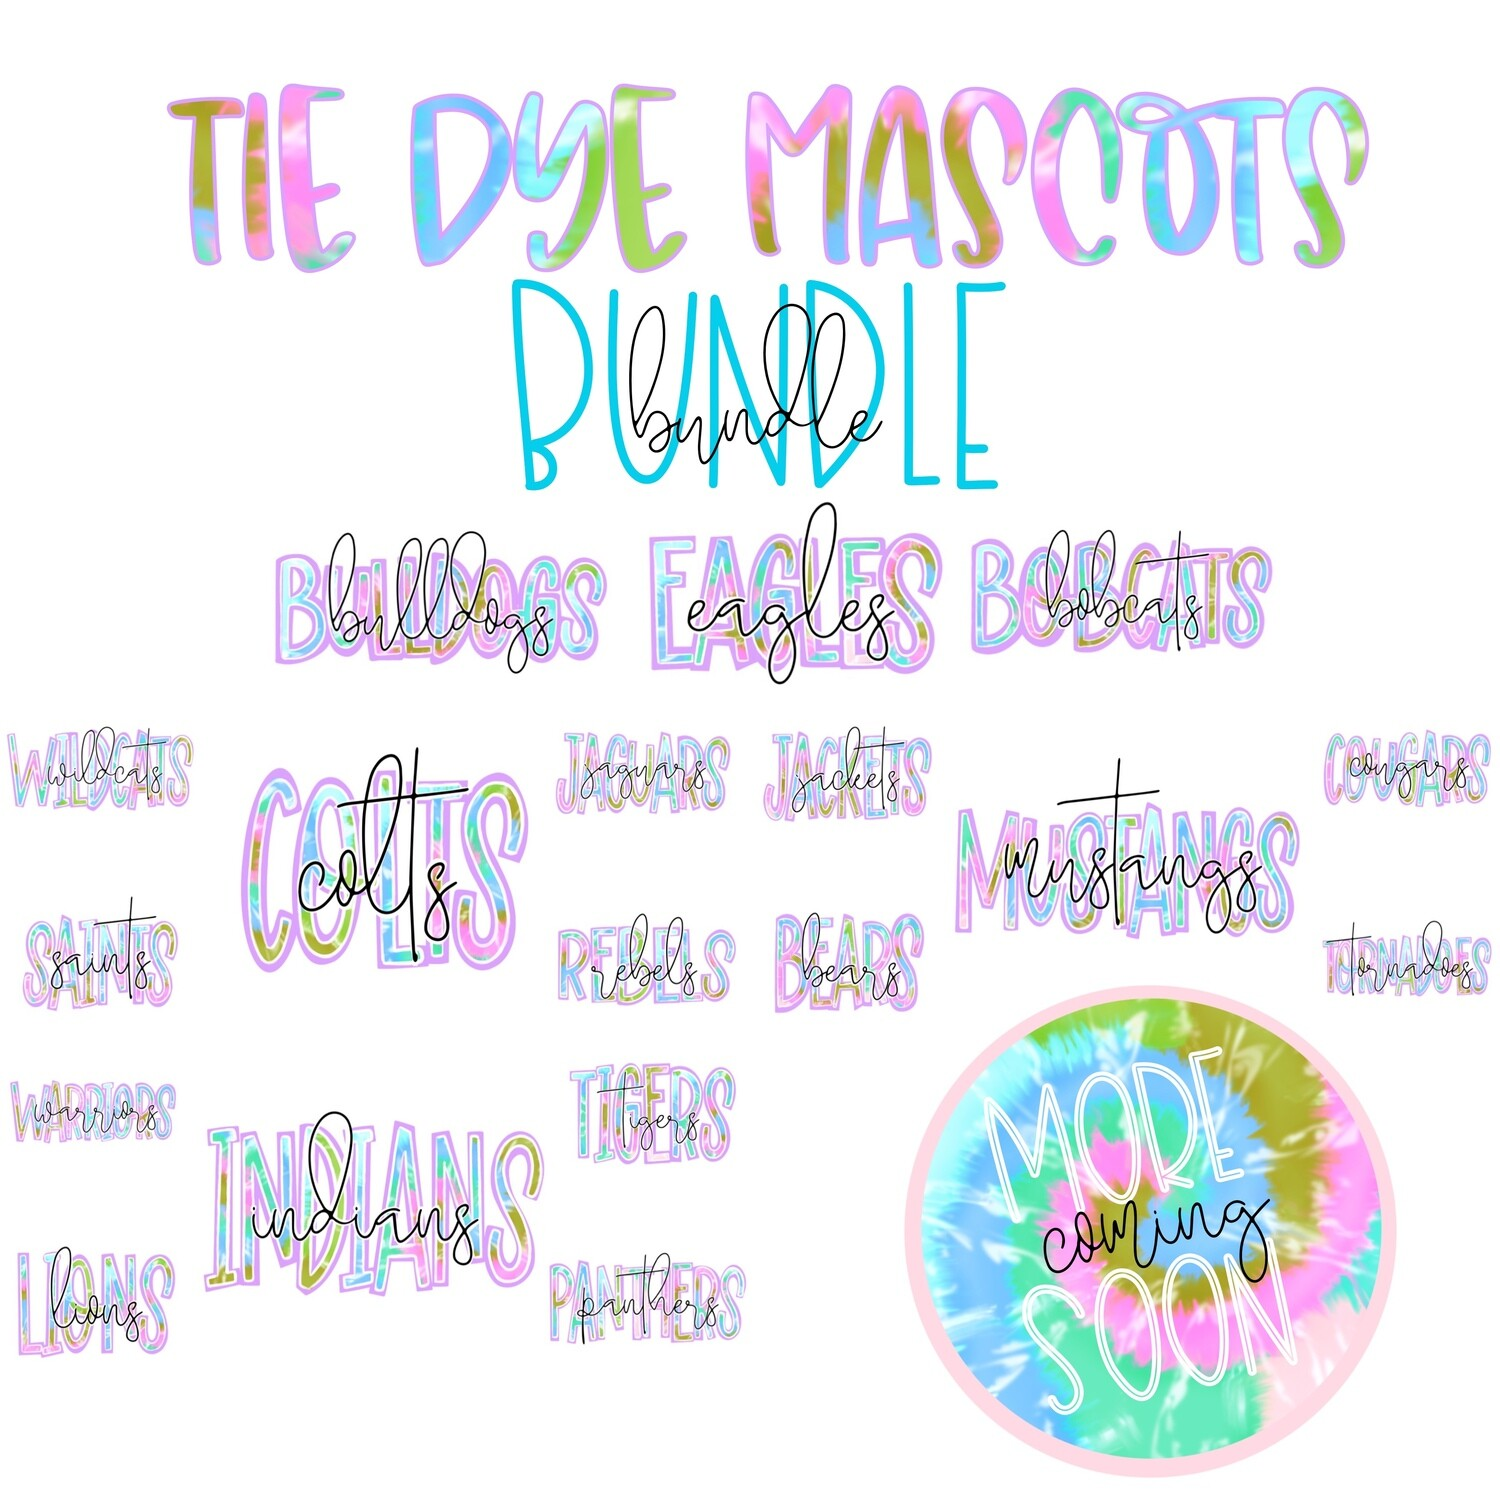 Tie Dye Mascot Names Bundle - 26 Files (and counting)